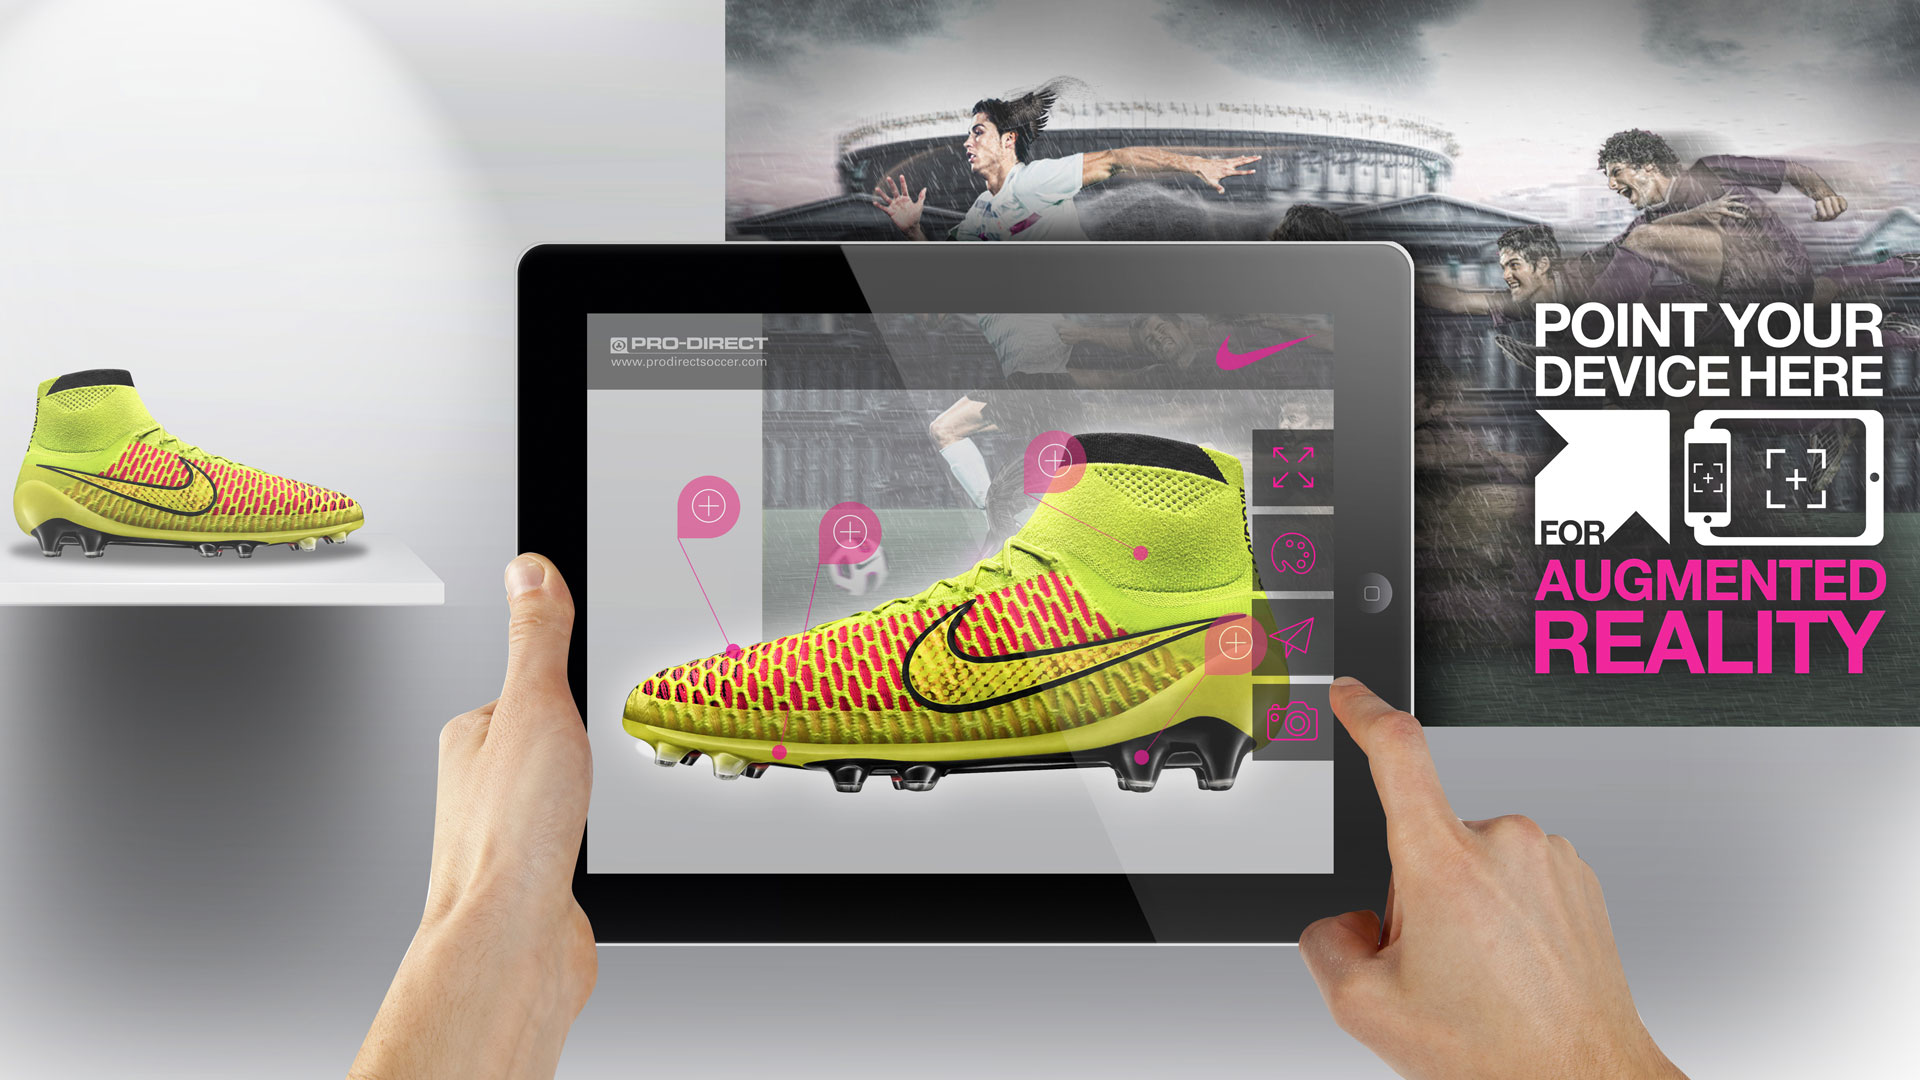 Is augmented reality online advertising bellmore ny gambling